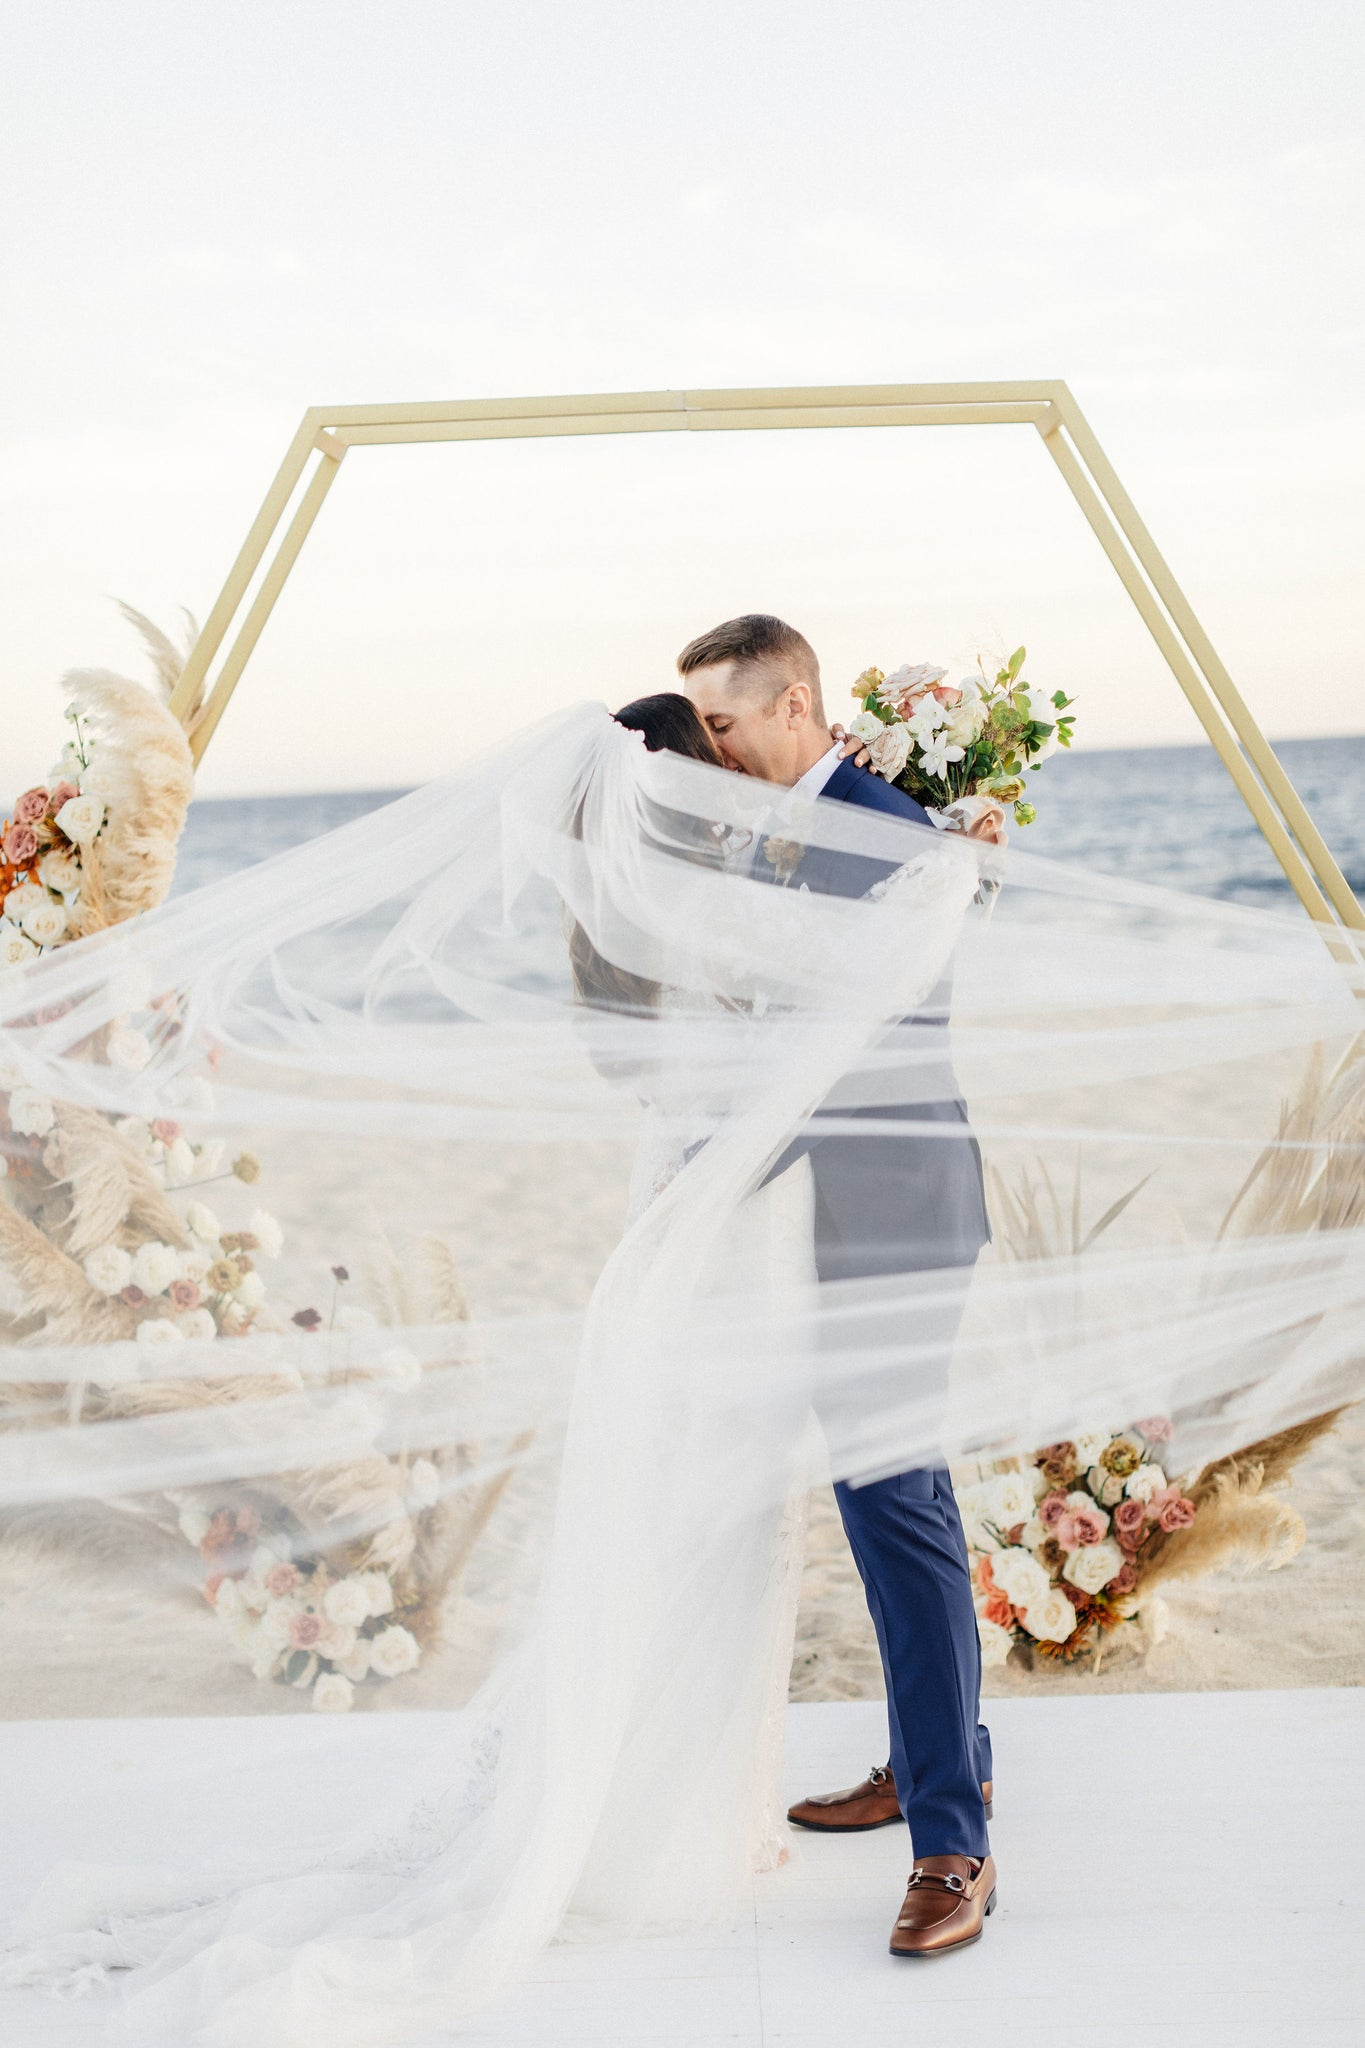 Beach destination wedding in Solaz, Los Cabos, Mexico.